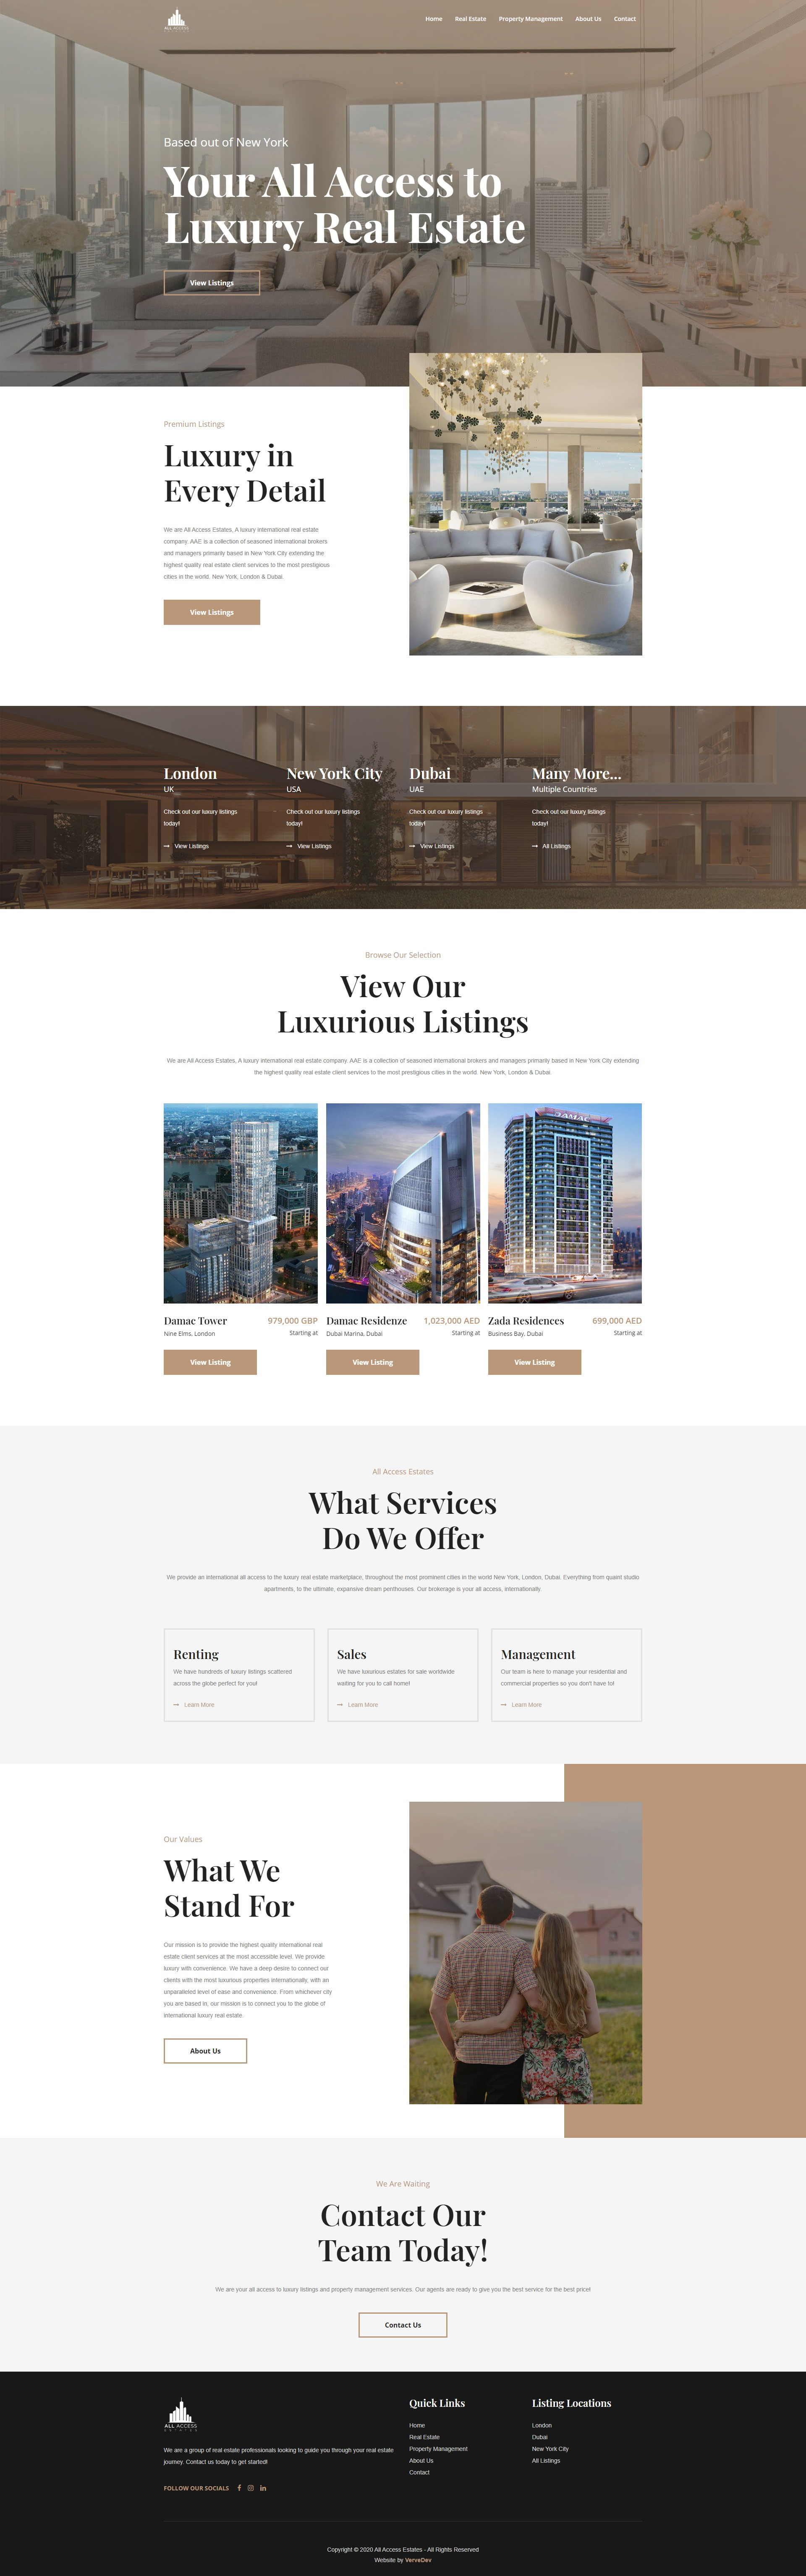 web-design-burlington-portfolio-2